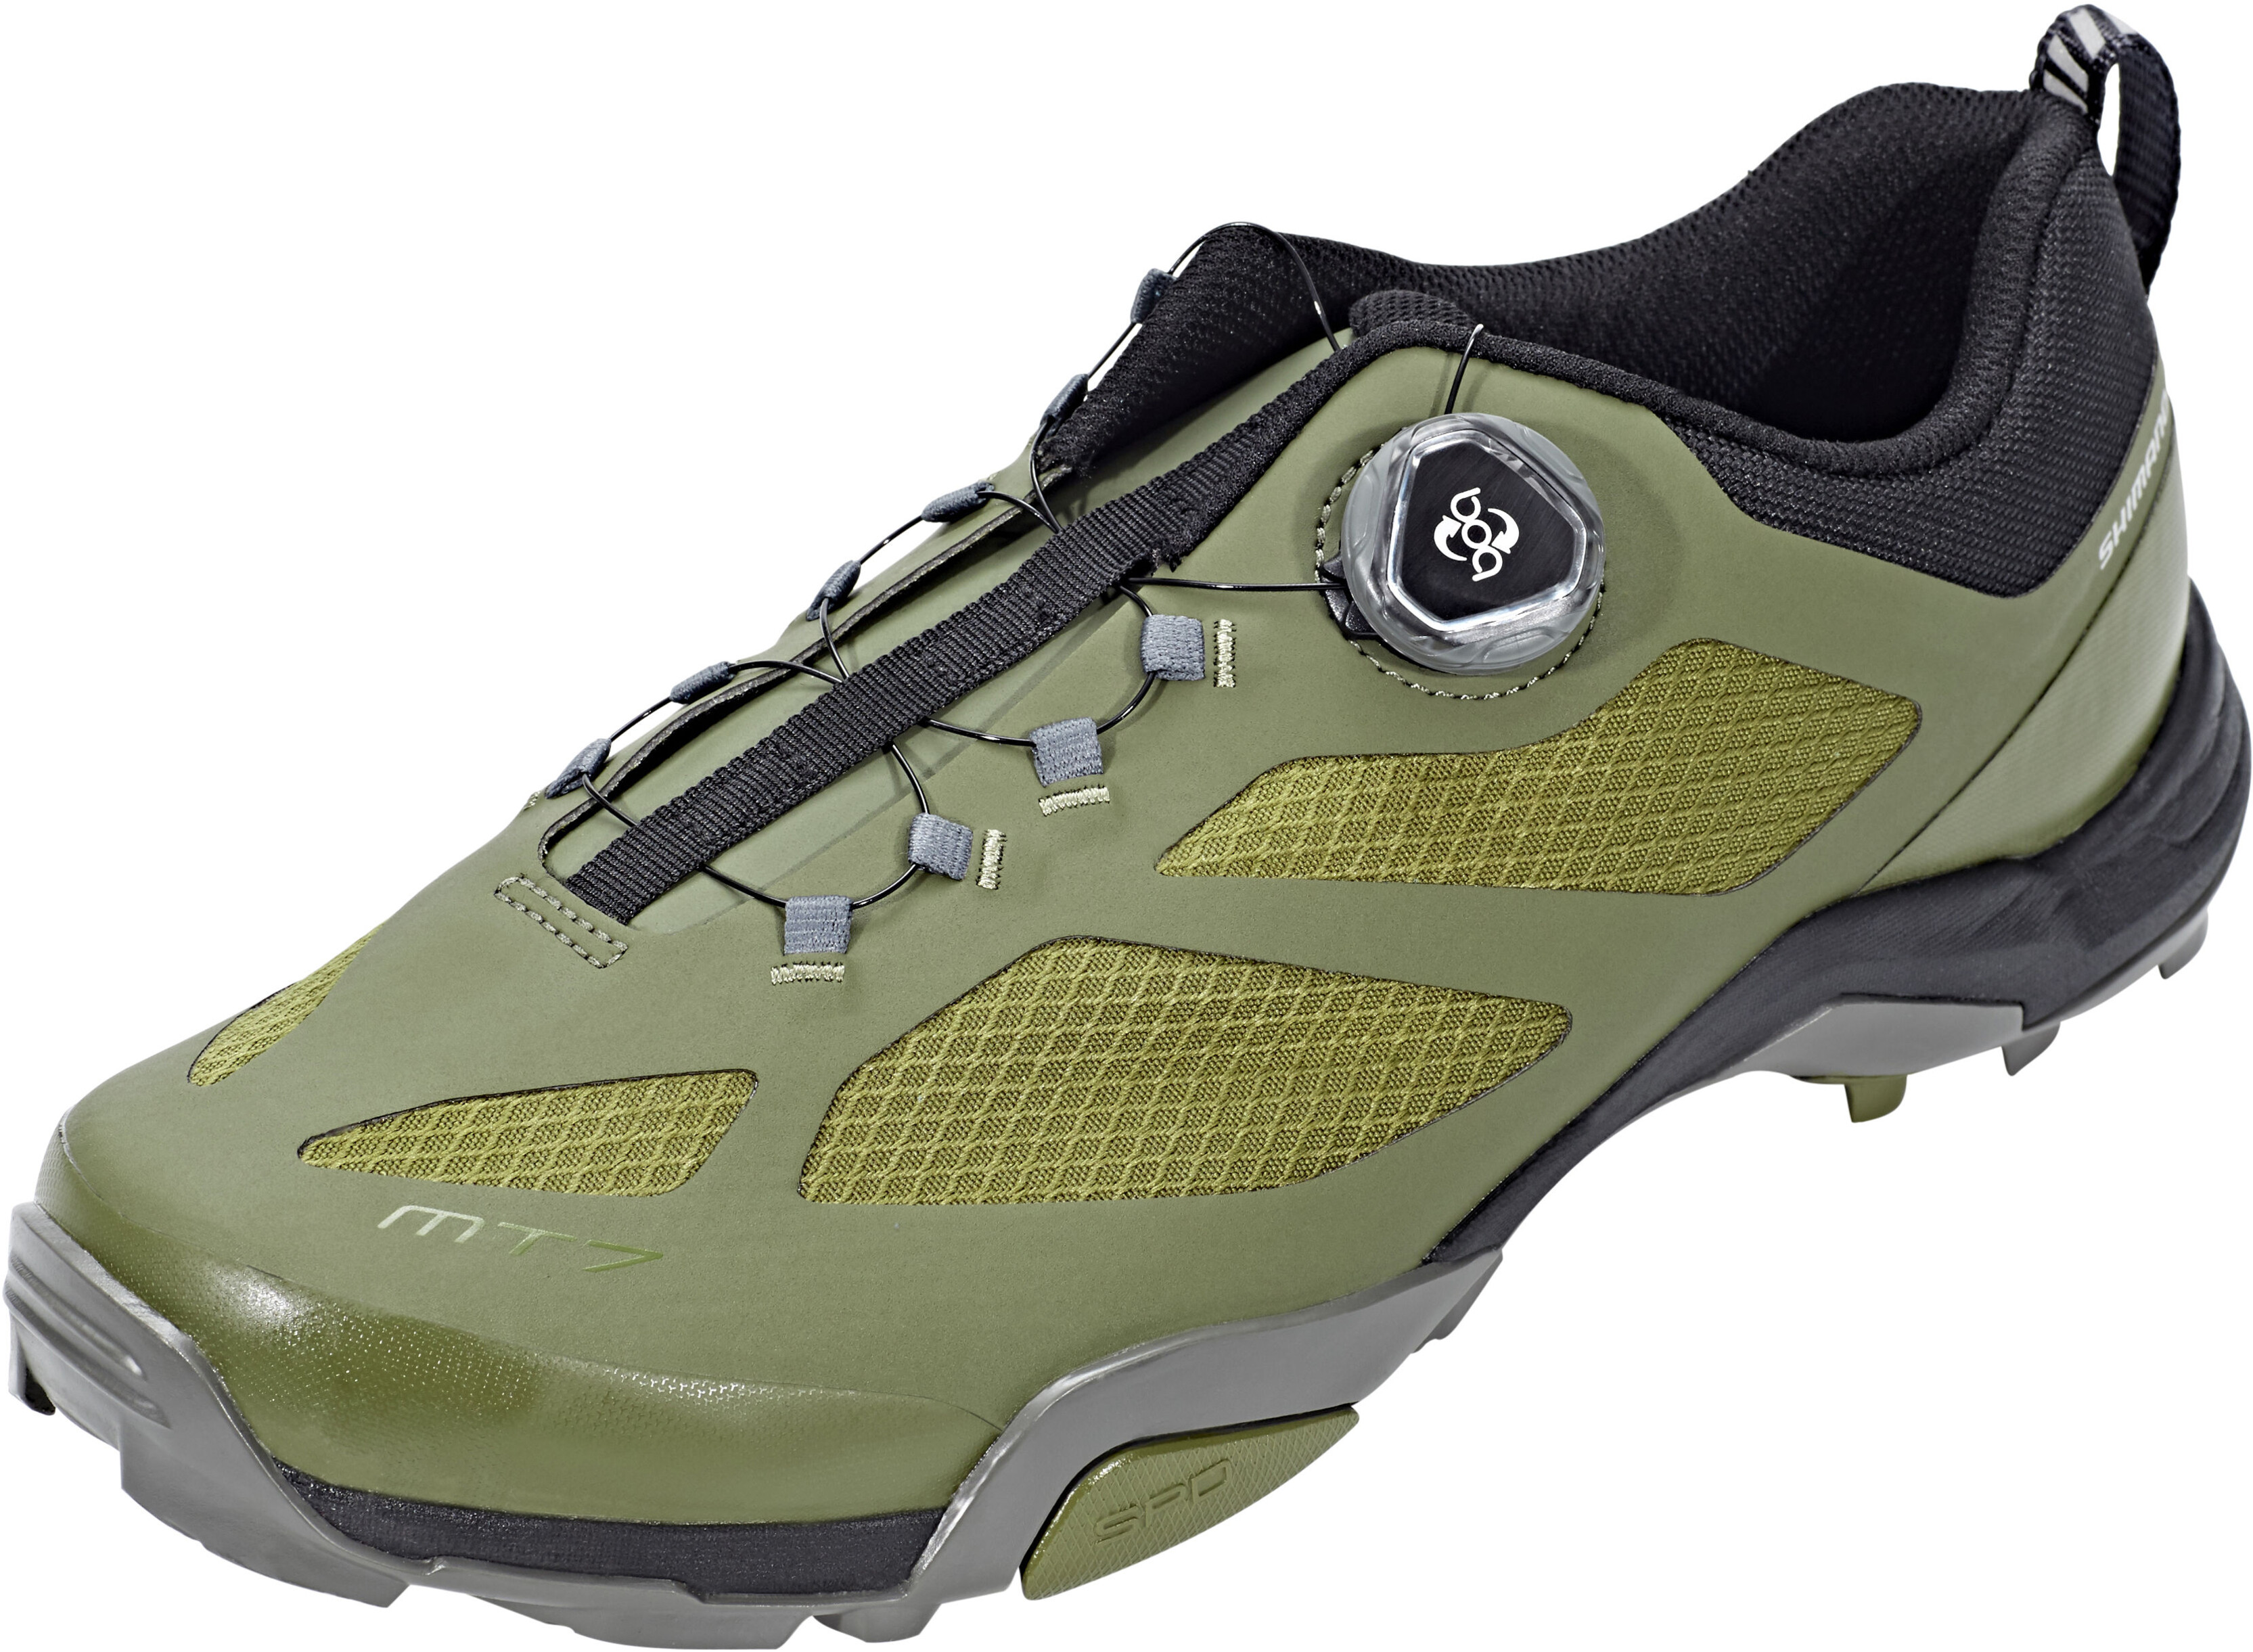 new concept 0aeb3 b0e08 Shimano SH-MT7 - Chaussures - olive